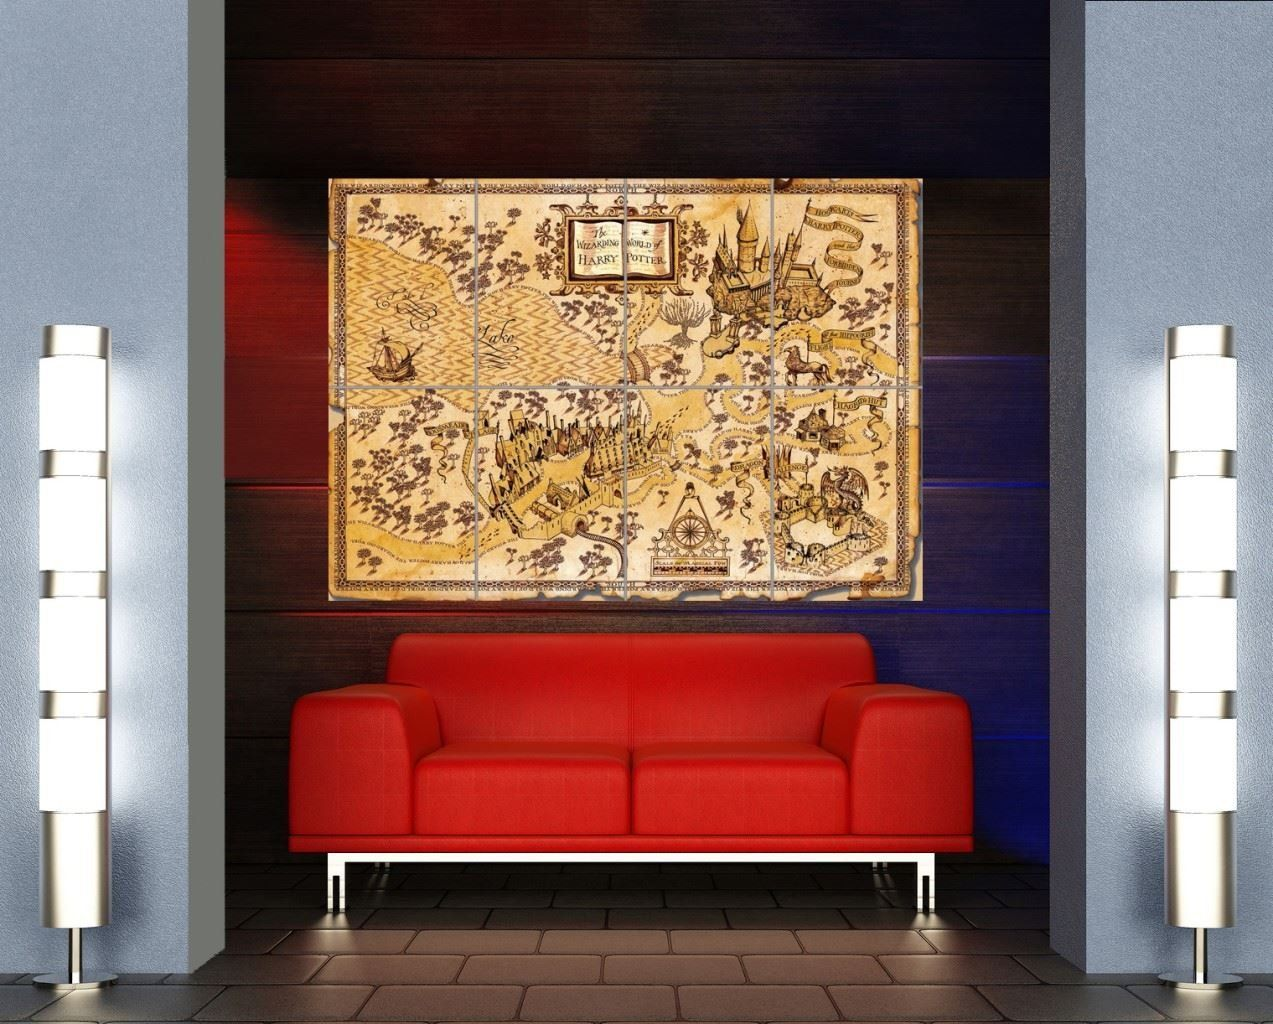 Amazon harry potter wizarding world map giant poster x3197 amazon harry potter wizarding world map giant poster x3197 posters prints gumiabroncs Gallery